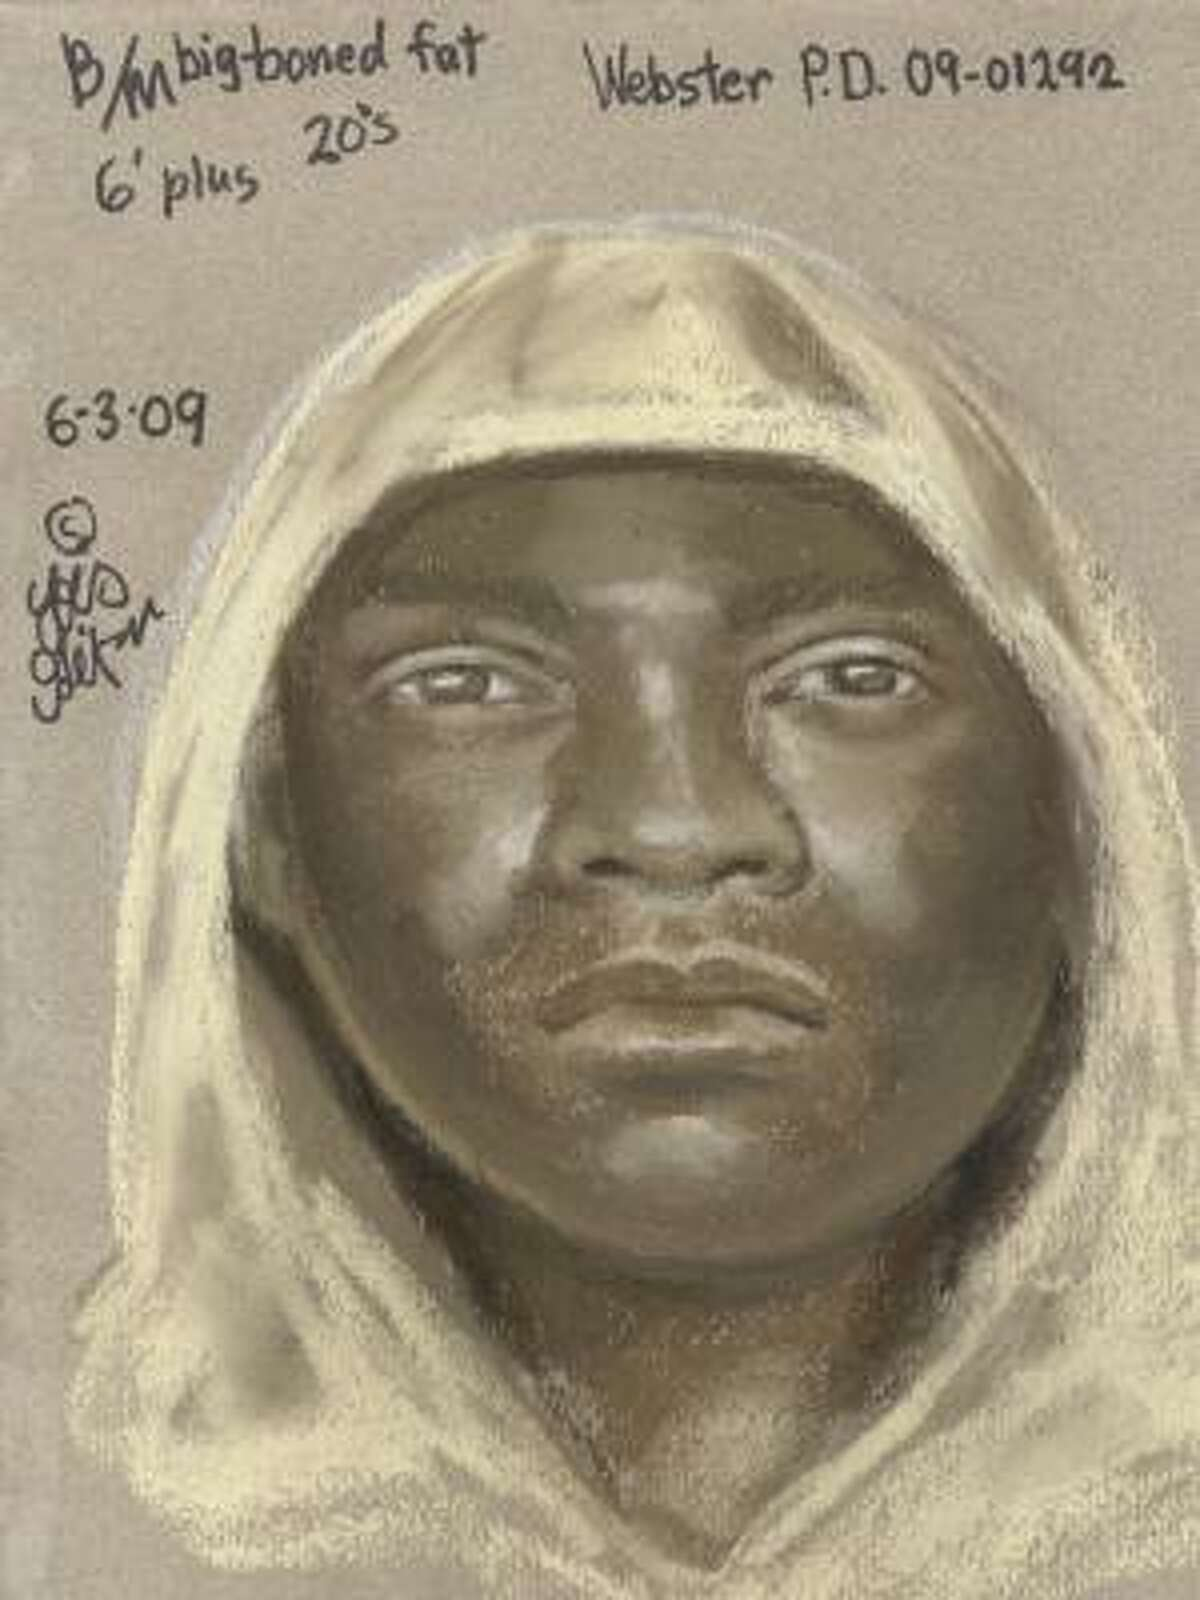 This is a sketch of one of the suspects in a May 24 home robbery in Webster in which the victims were hog-tied.